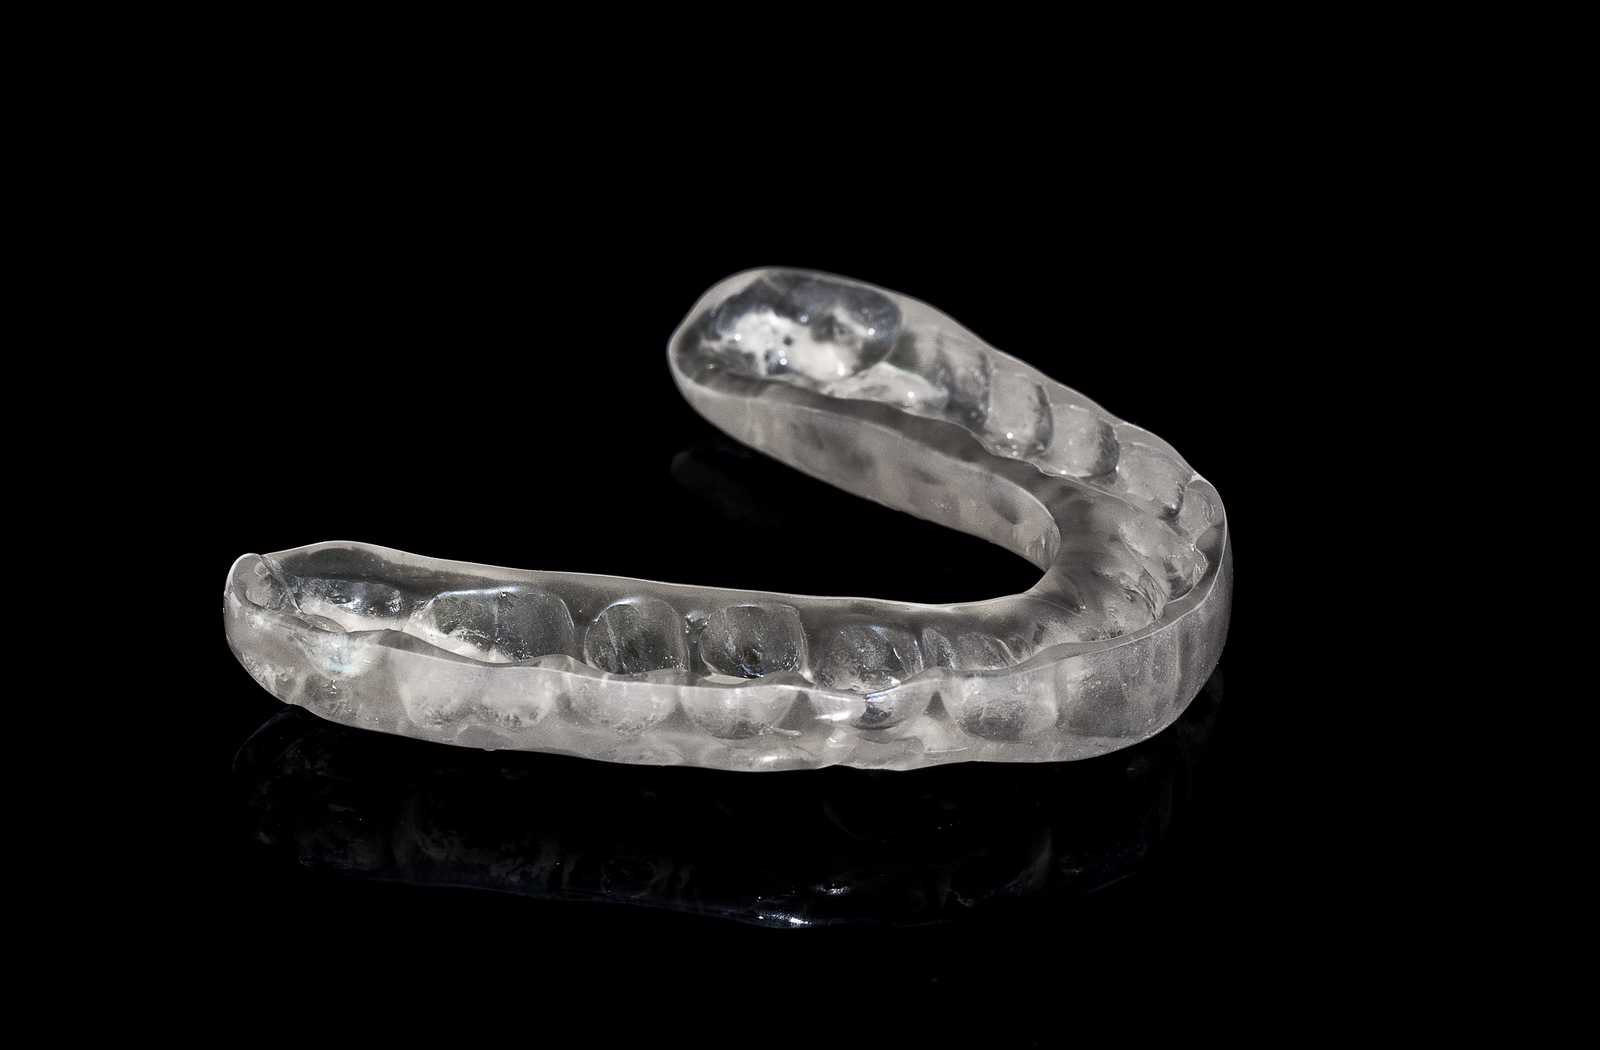 occlusal splint for nightwear on black background